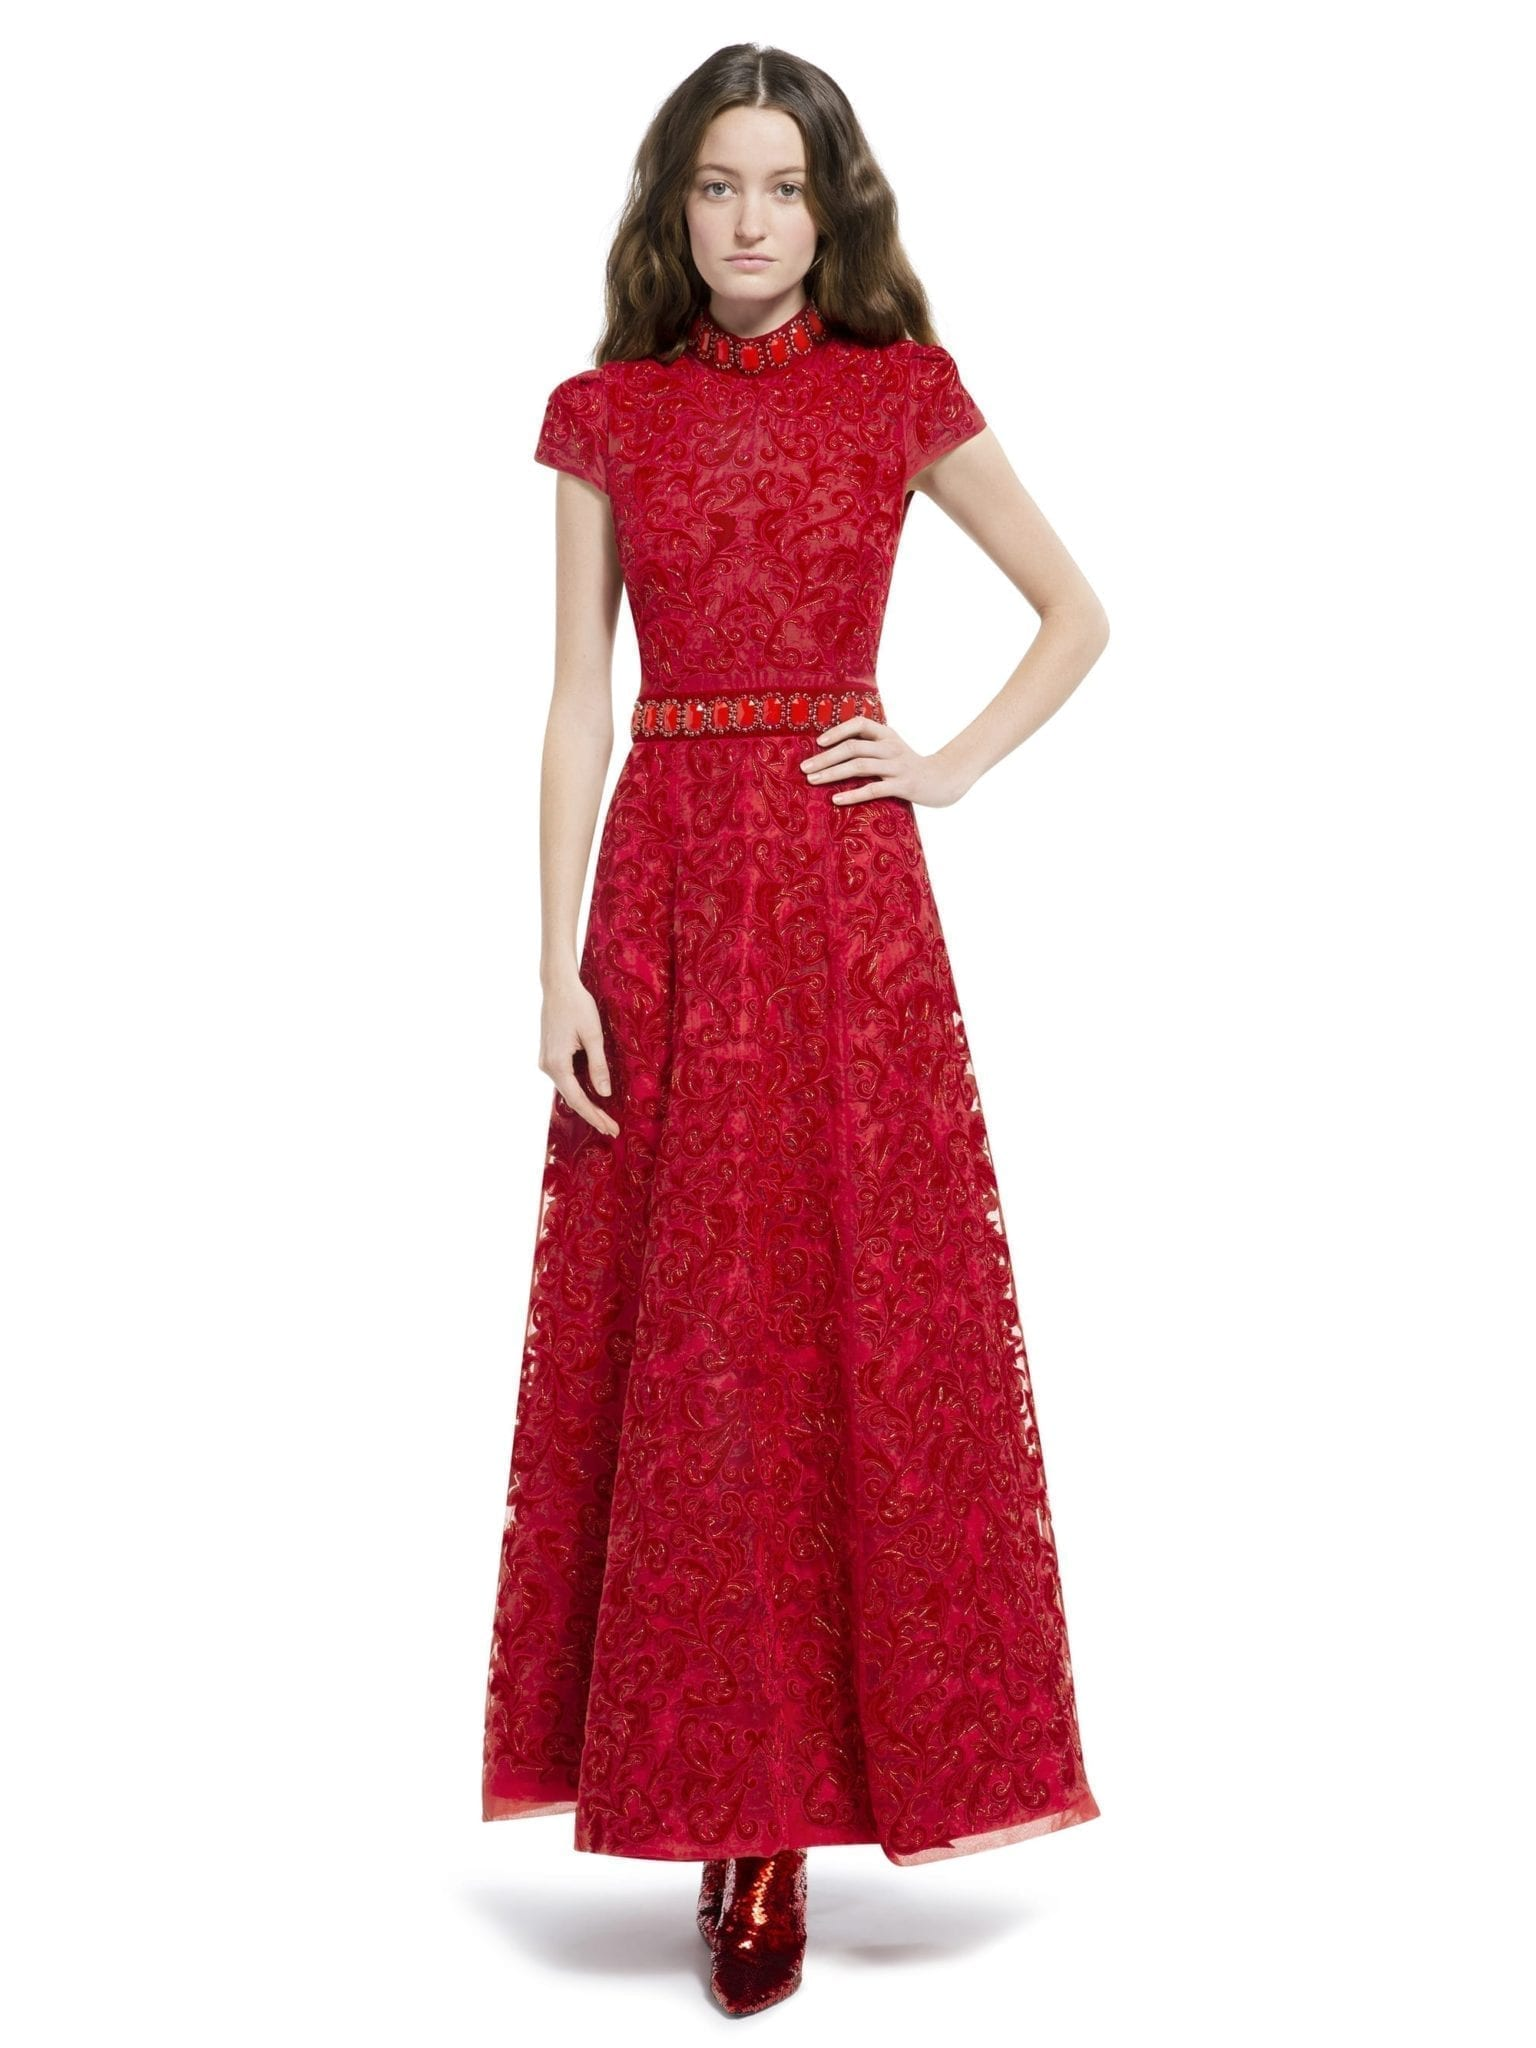 ALICE AND OLIVIA Nidia Embellished Mock Neck Ruby Bordeaux Gown